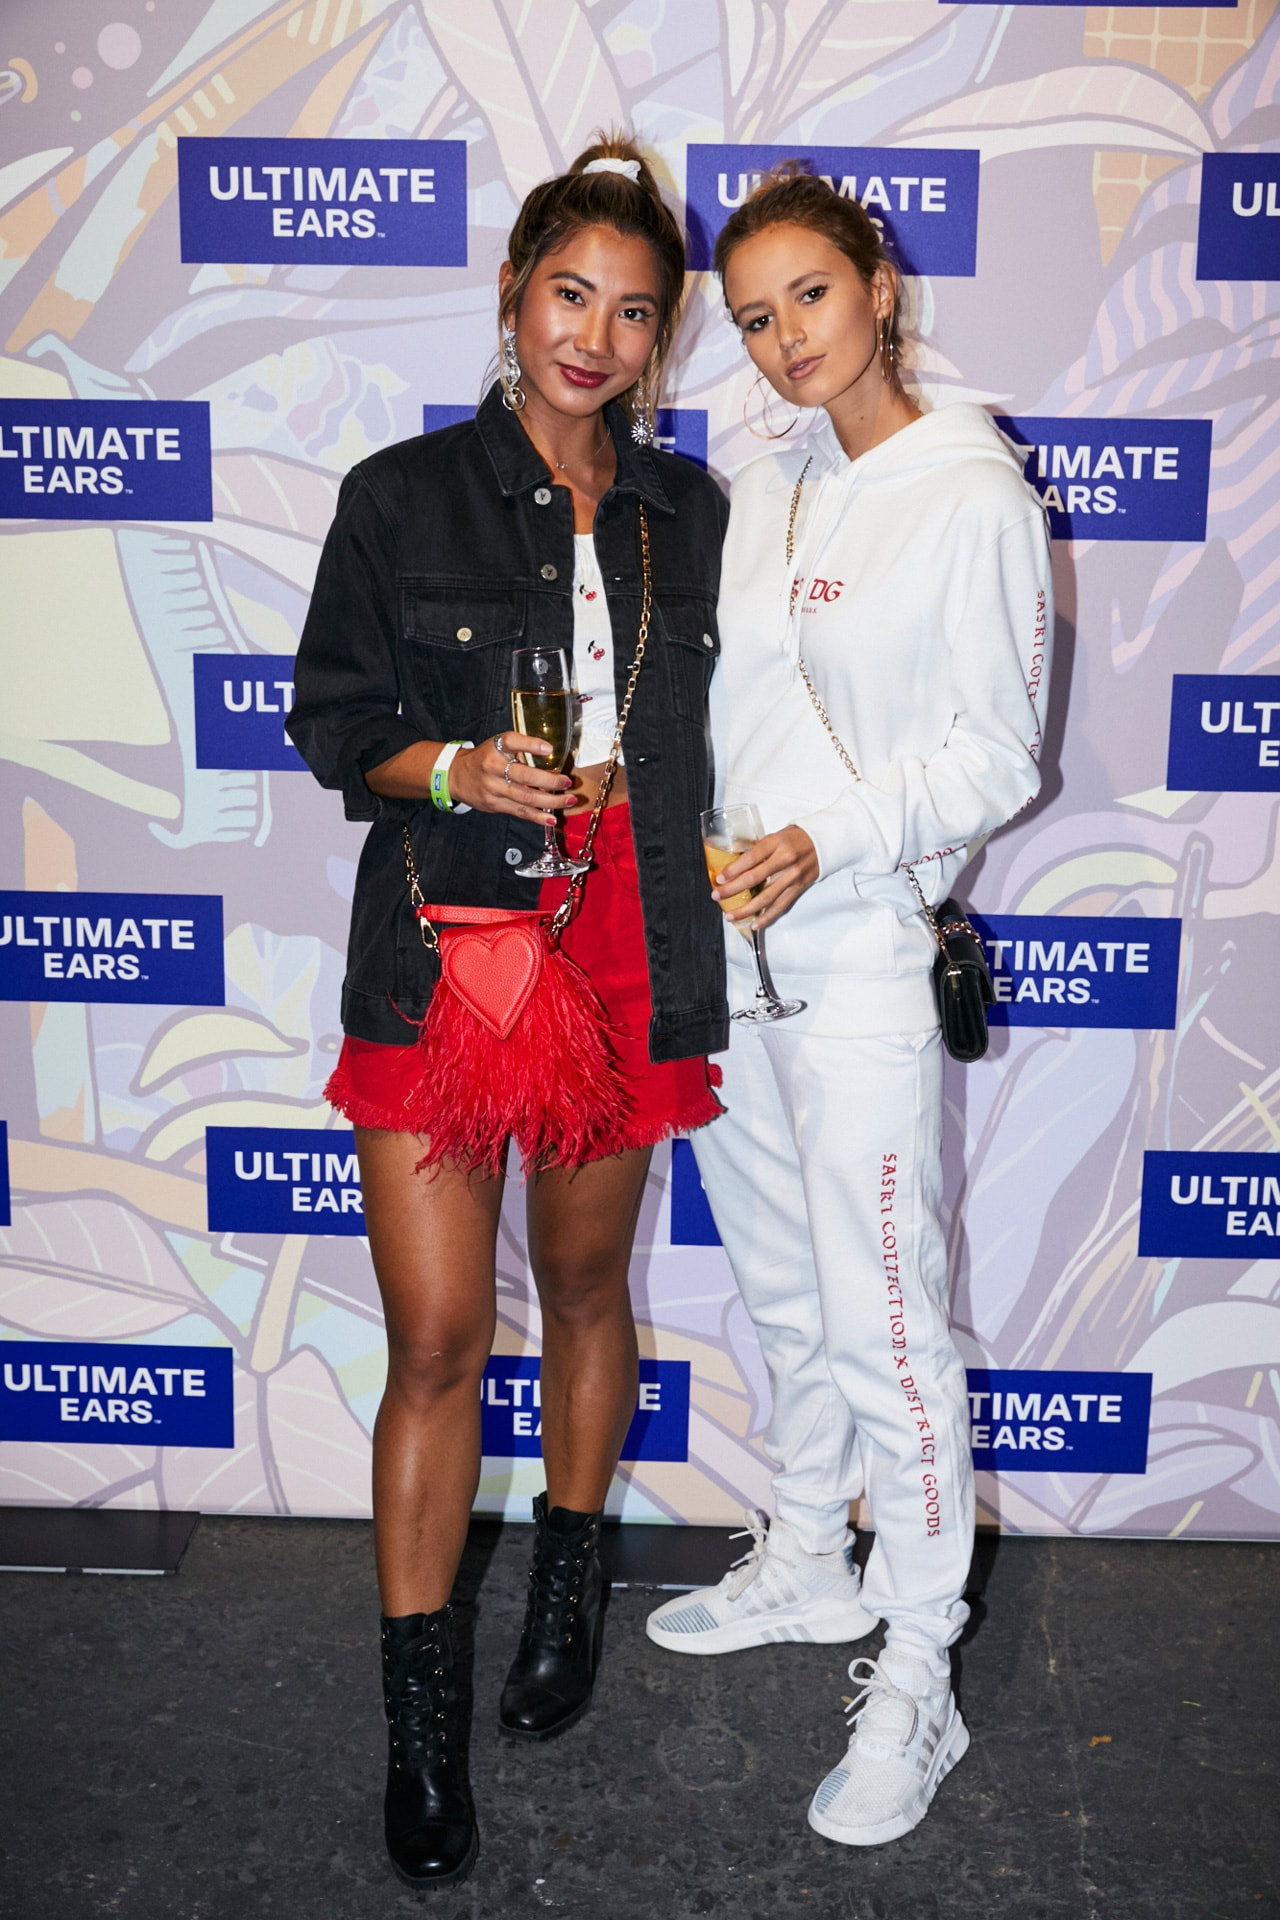 Jessie Khoo and Tori Levett attend Ultimate Ears latest unveiling in Waterloo. Image credit: Flashpoint Labs